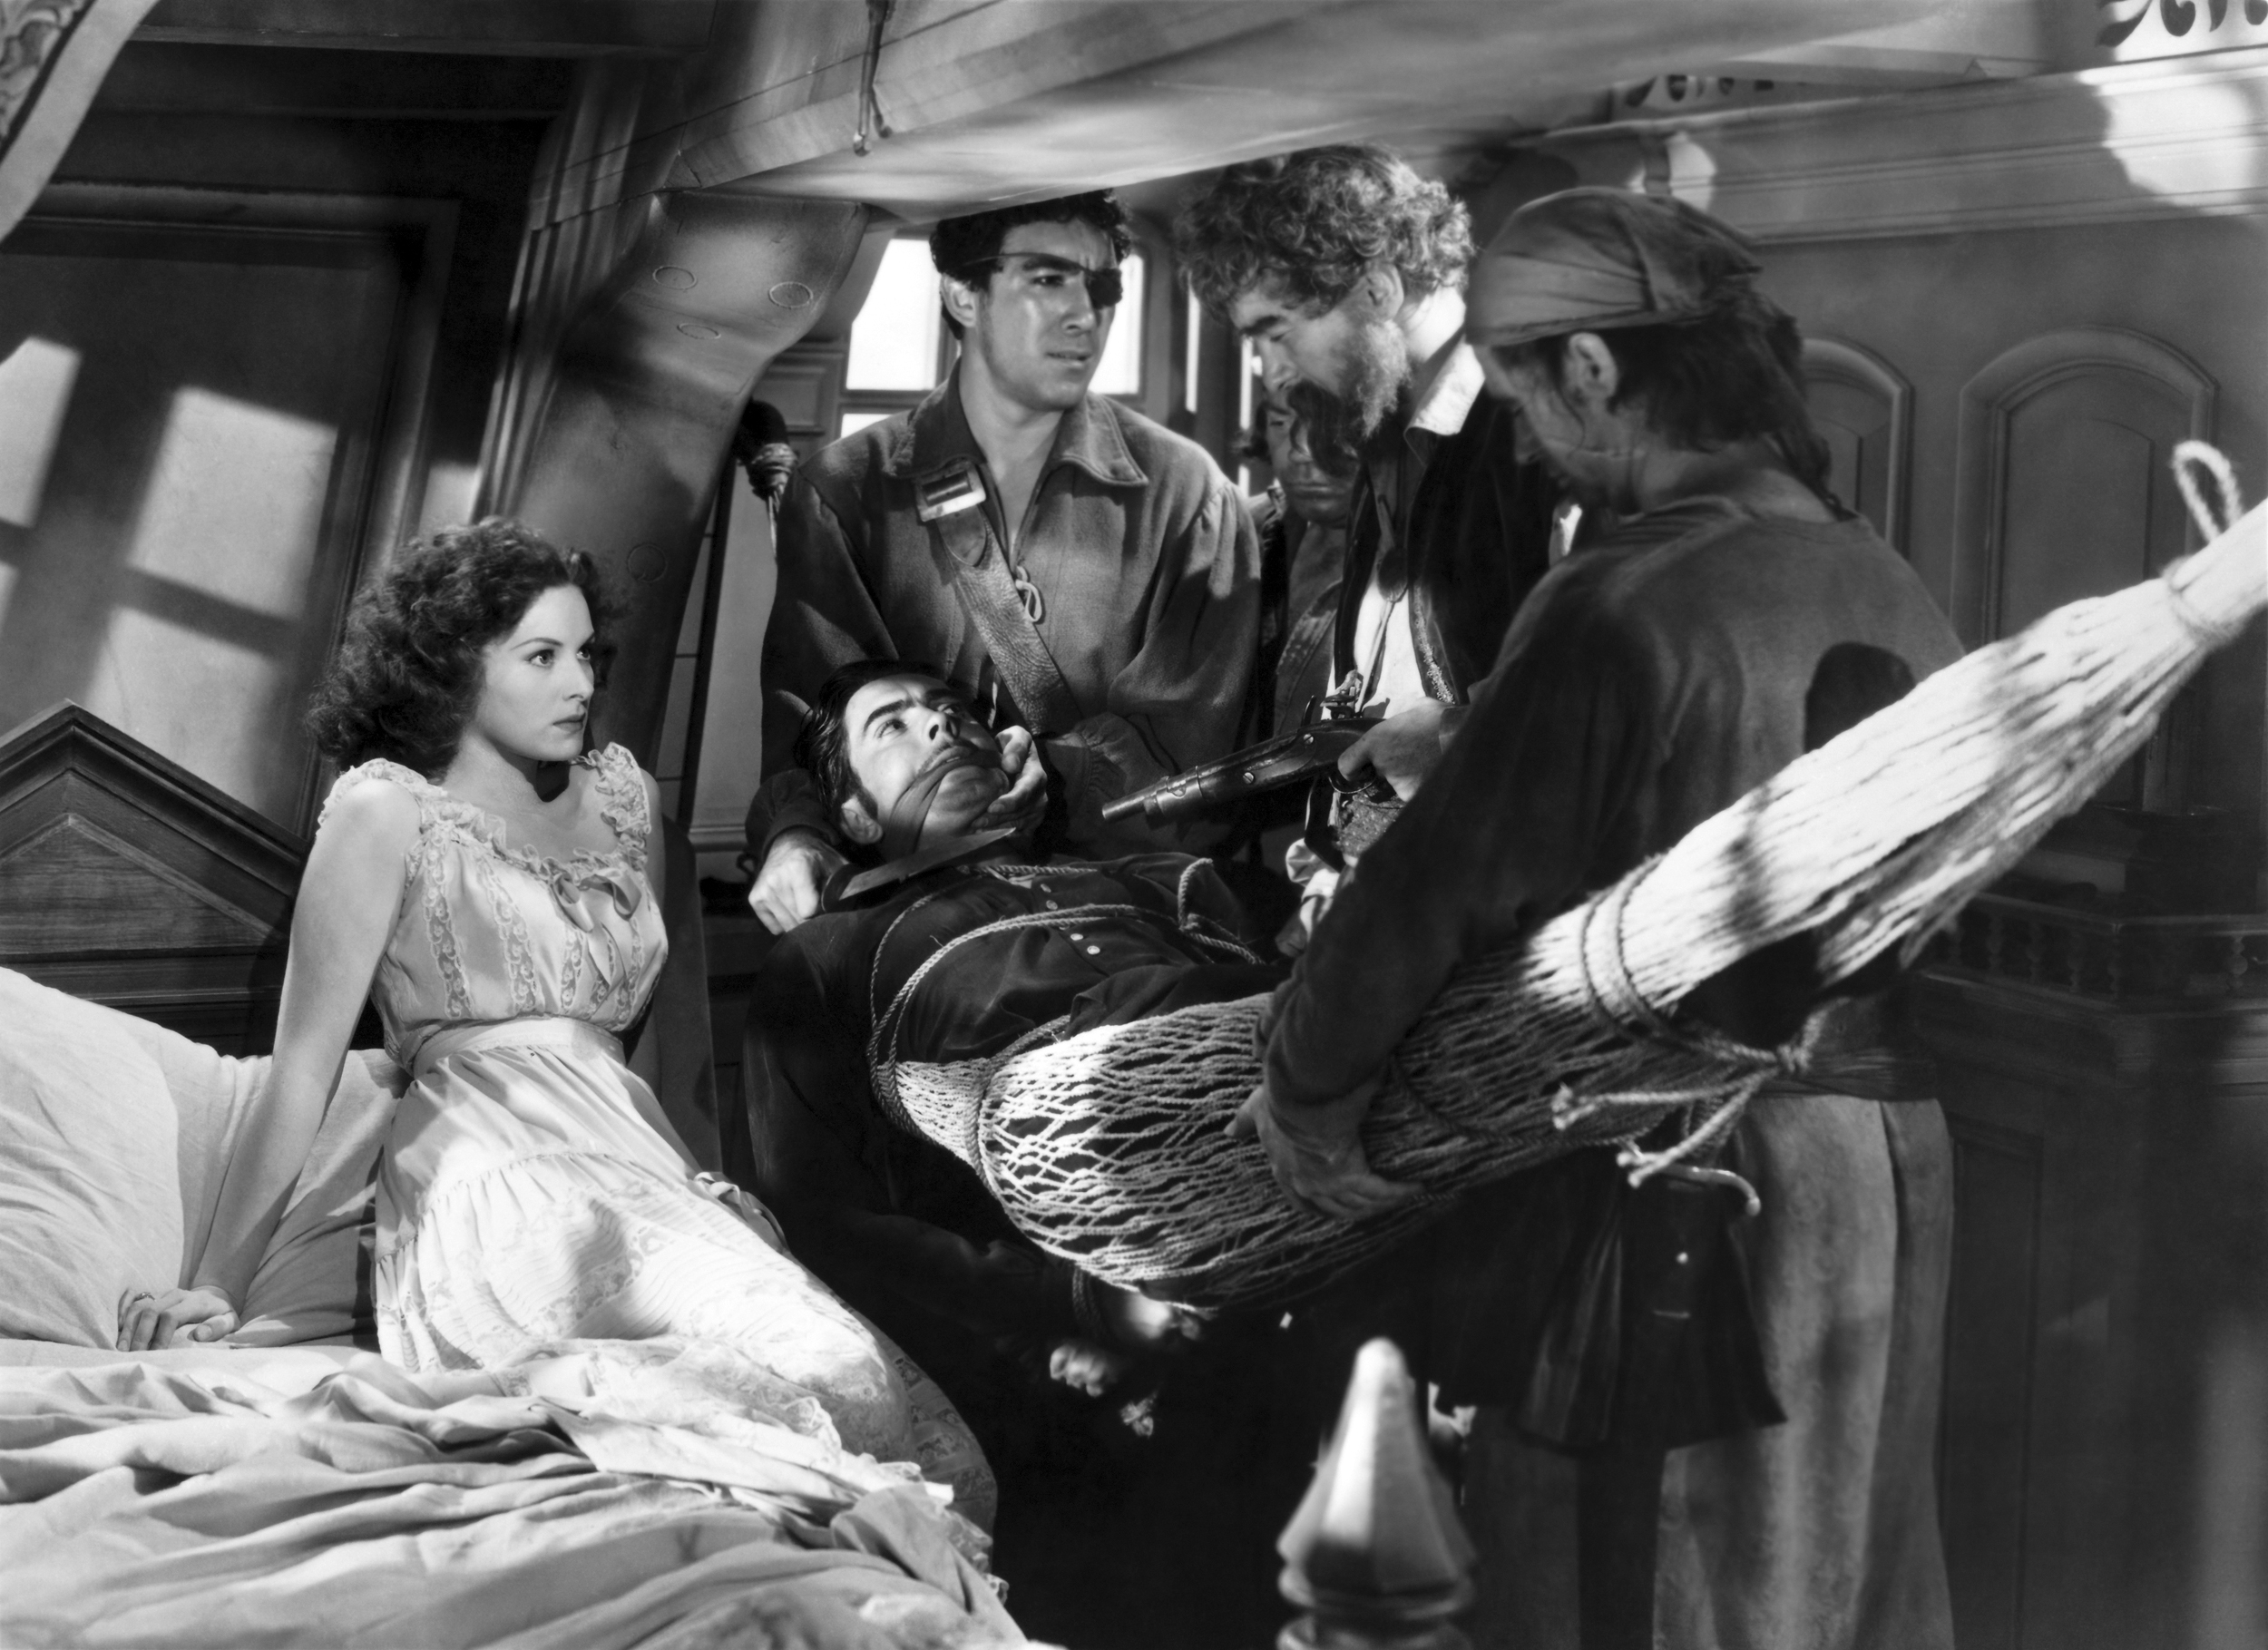 Tyrone Power, Jr. in The Black Swan with (L to R) Maureen O'Hara, Tyrone Power, Jr., Anthony Quinn, Unknown, George Sanders, Unknown (Courtesy of Sarah and Michelle)